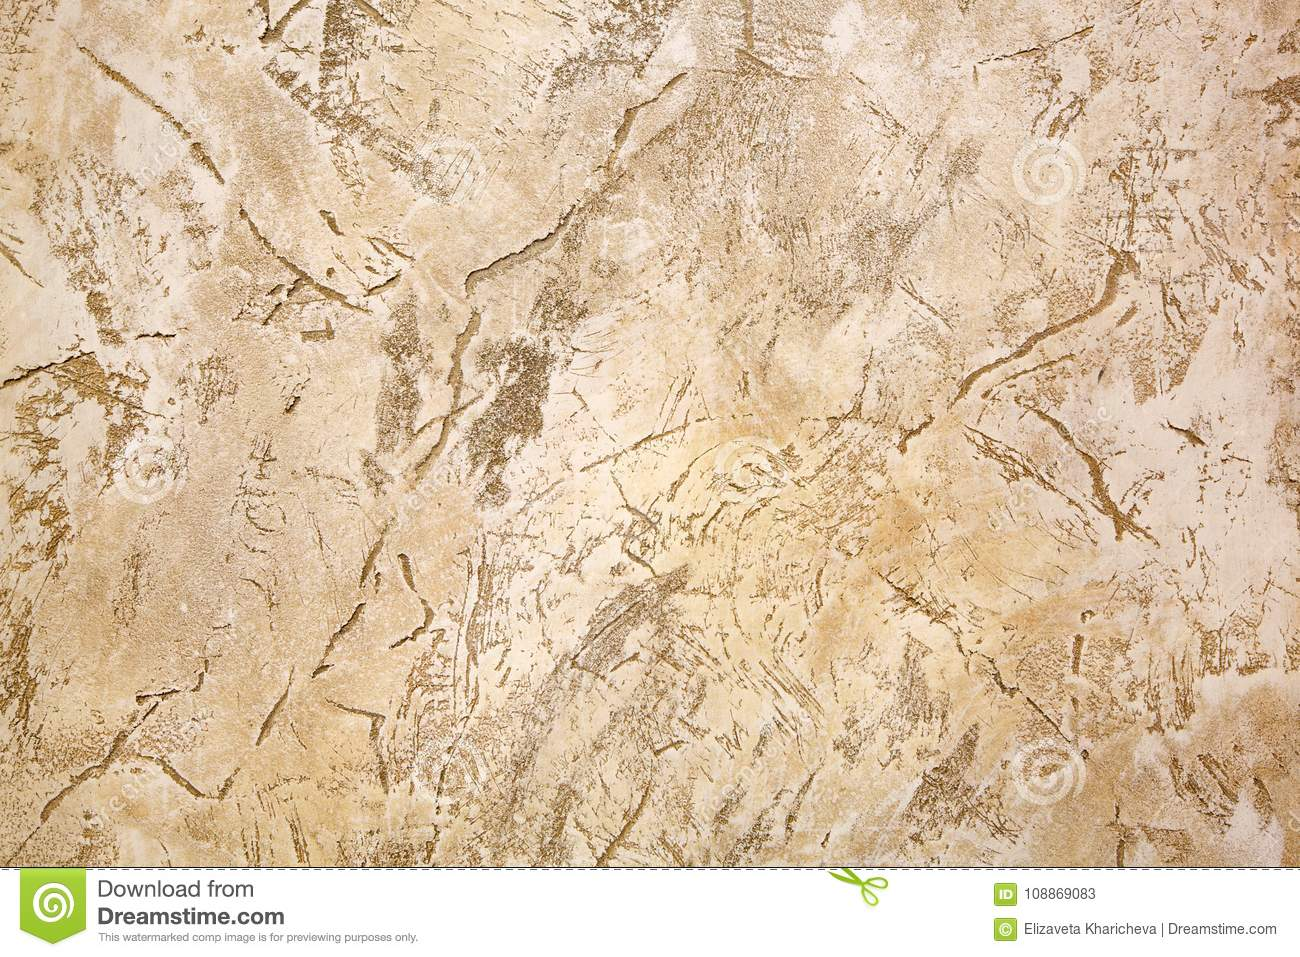 Decorative Covering For Walls Under A Light Beige Stone. Stock Image ...